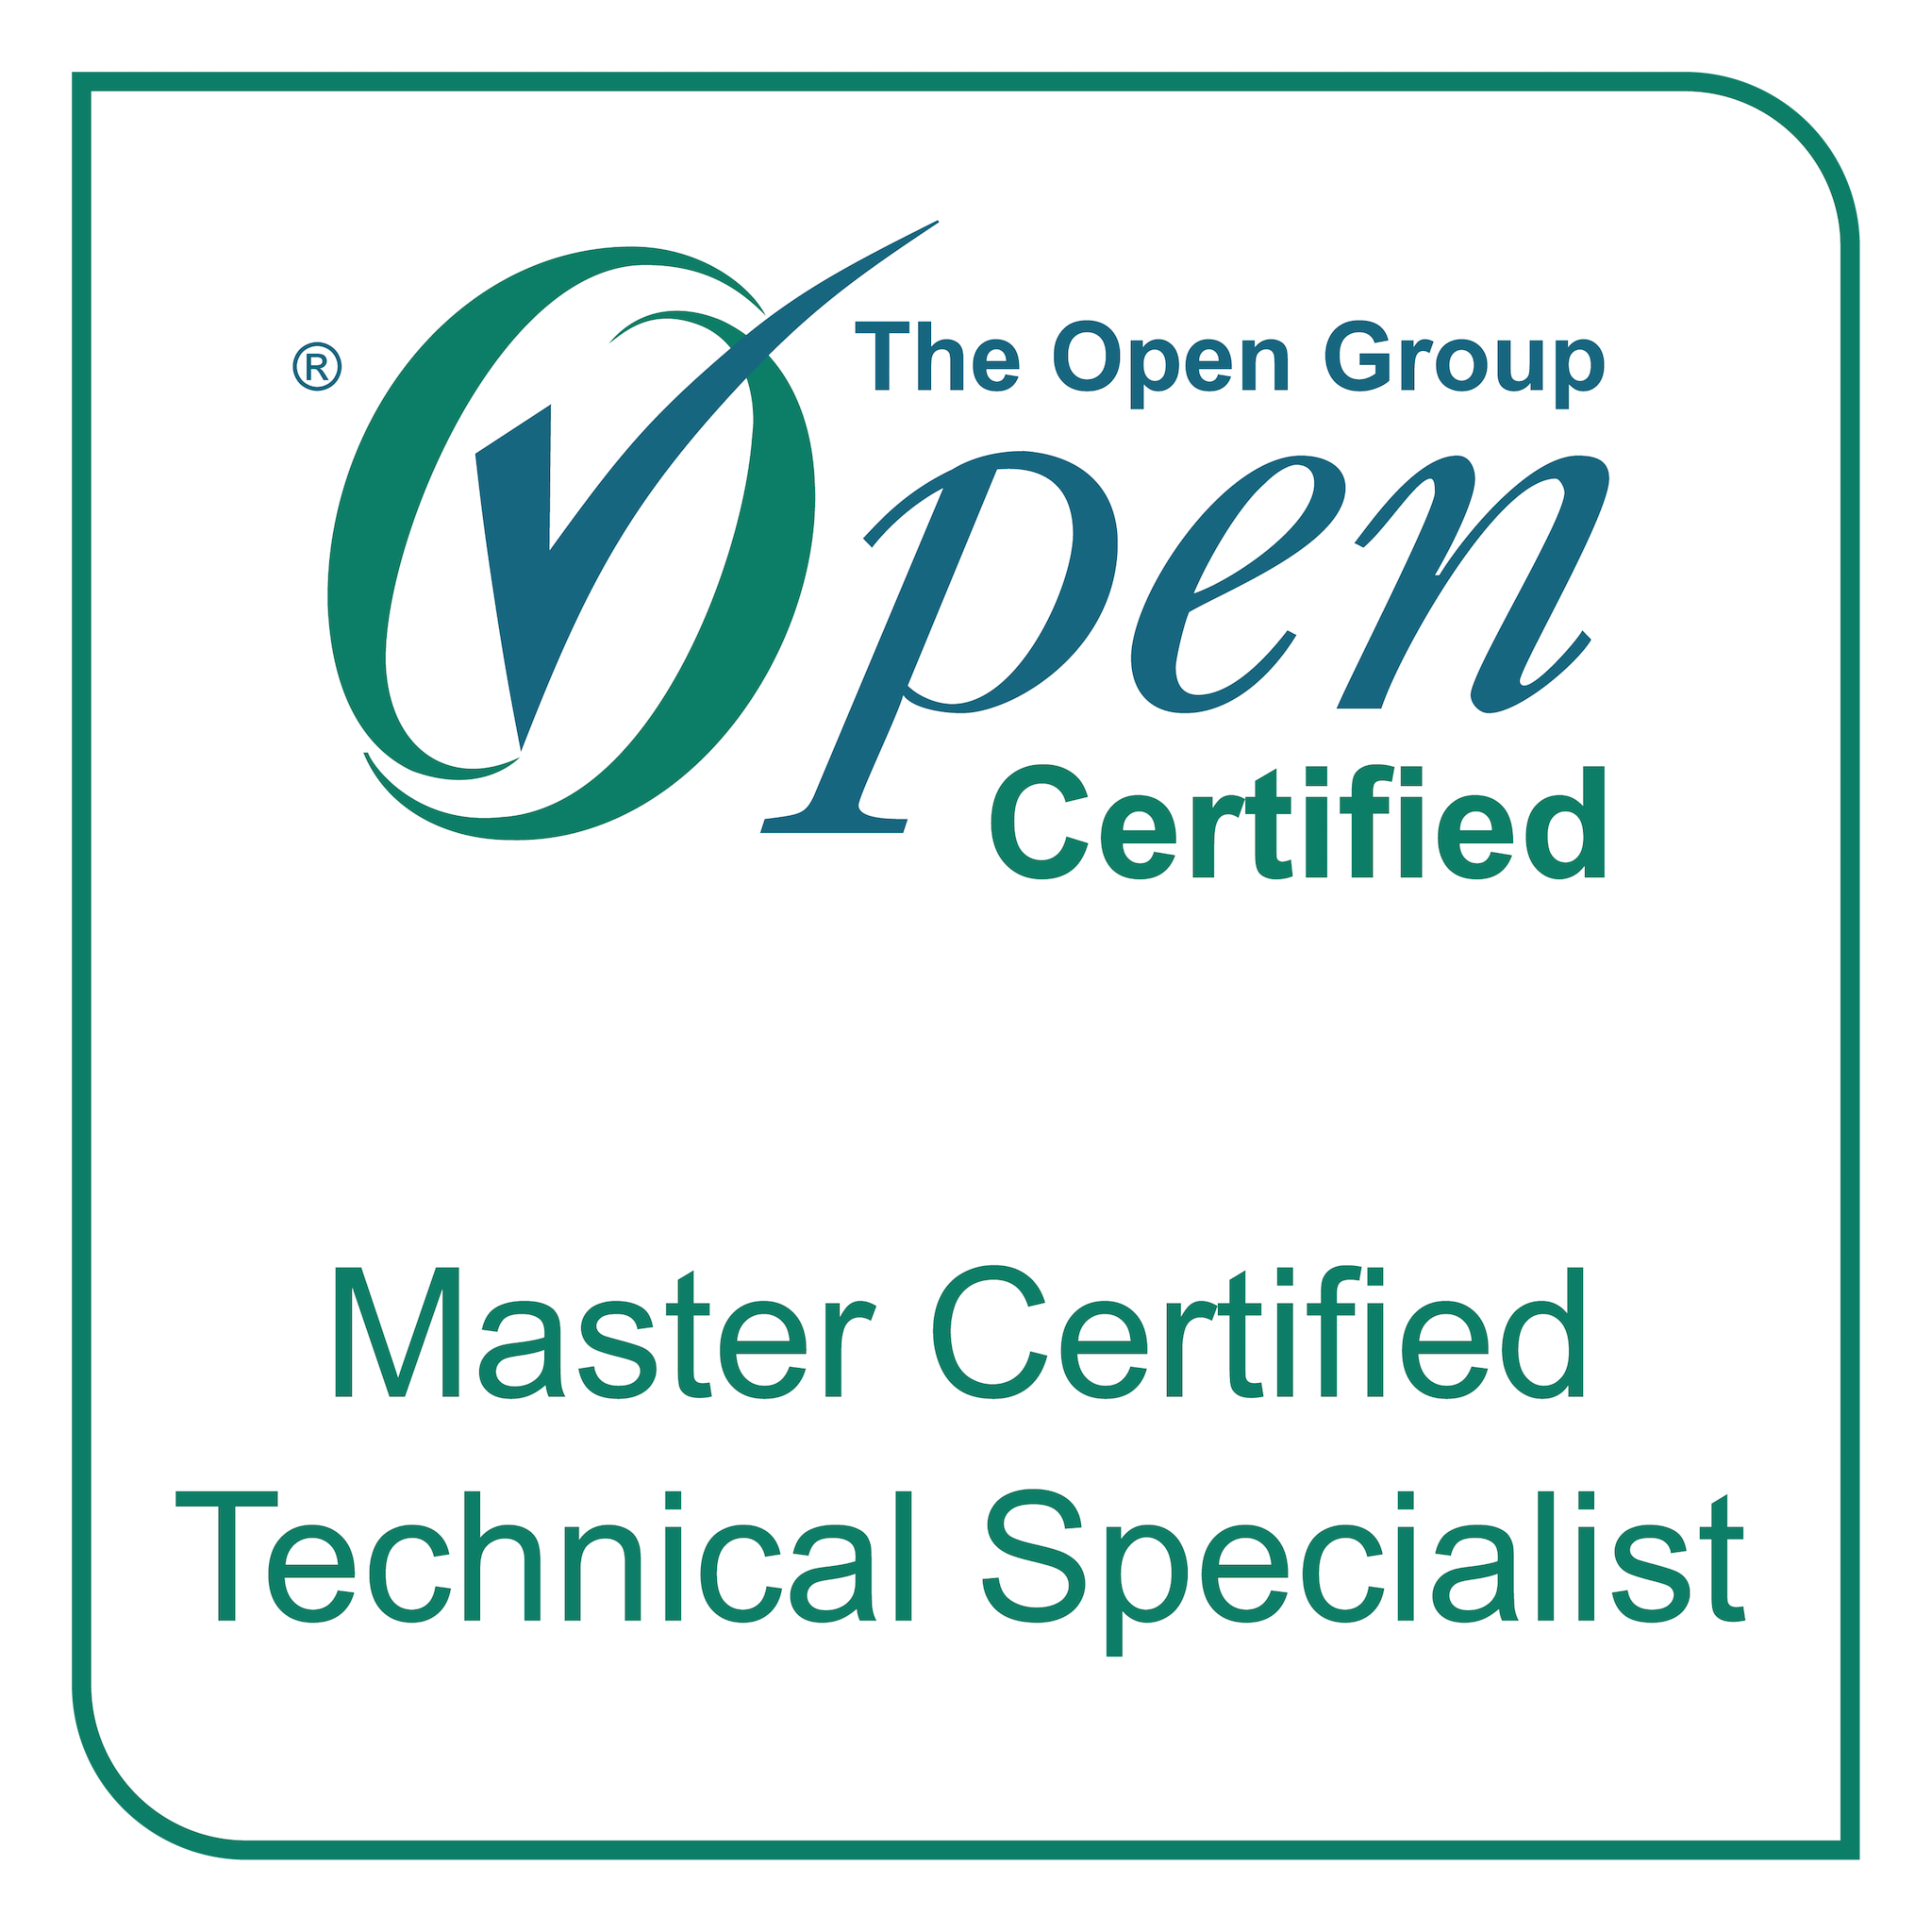 Professional Certification: Master Certified Technical Specialist, Security